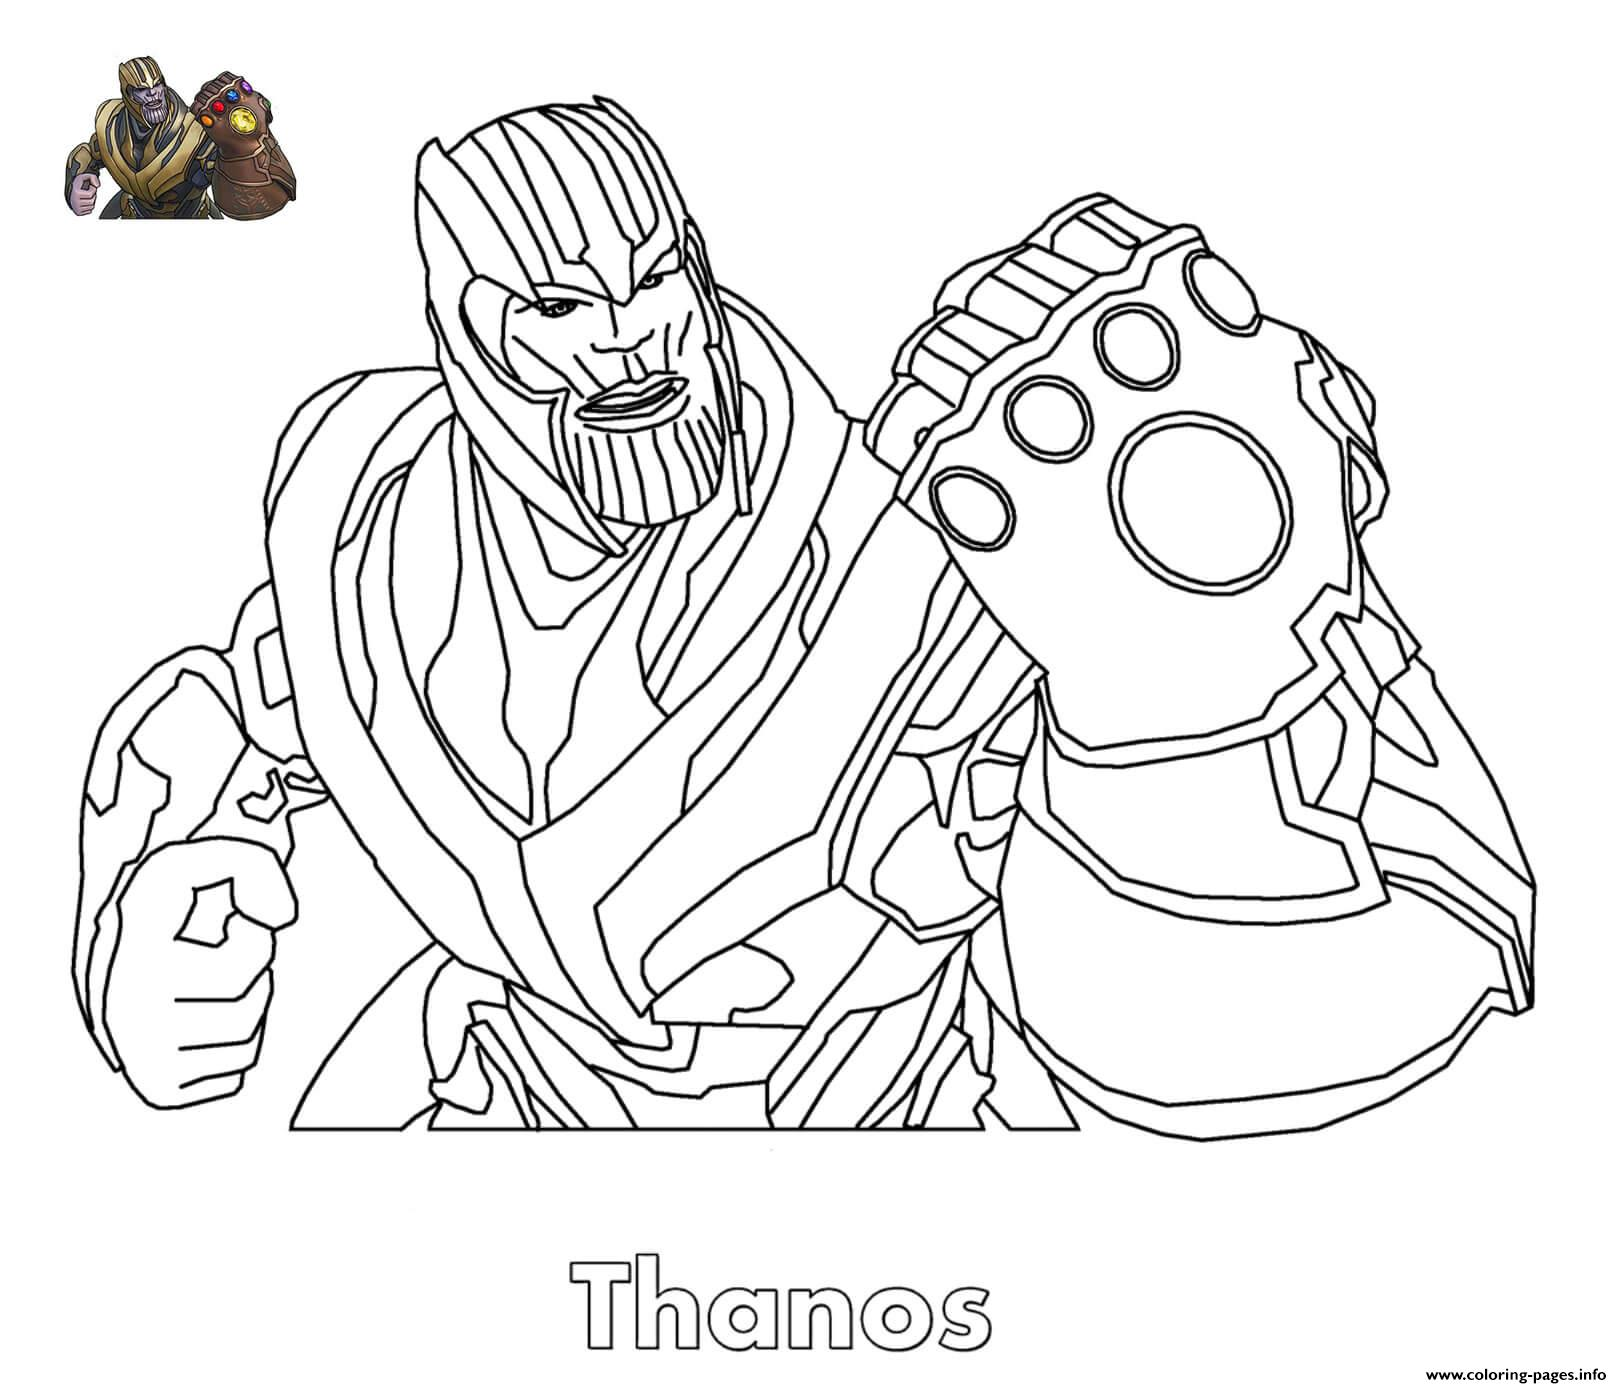 Thanos Fortnite also Coloriage Dessin Anime Walt Disney also Animal Faces Coloring Pages Smiley Face Cartoon Cat Page Cute Happy Farm in addition K Cz X Tp moreover Rcnk Zcr. on frog coloring pages for adults